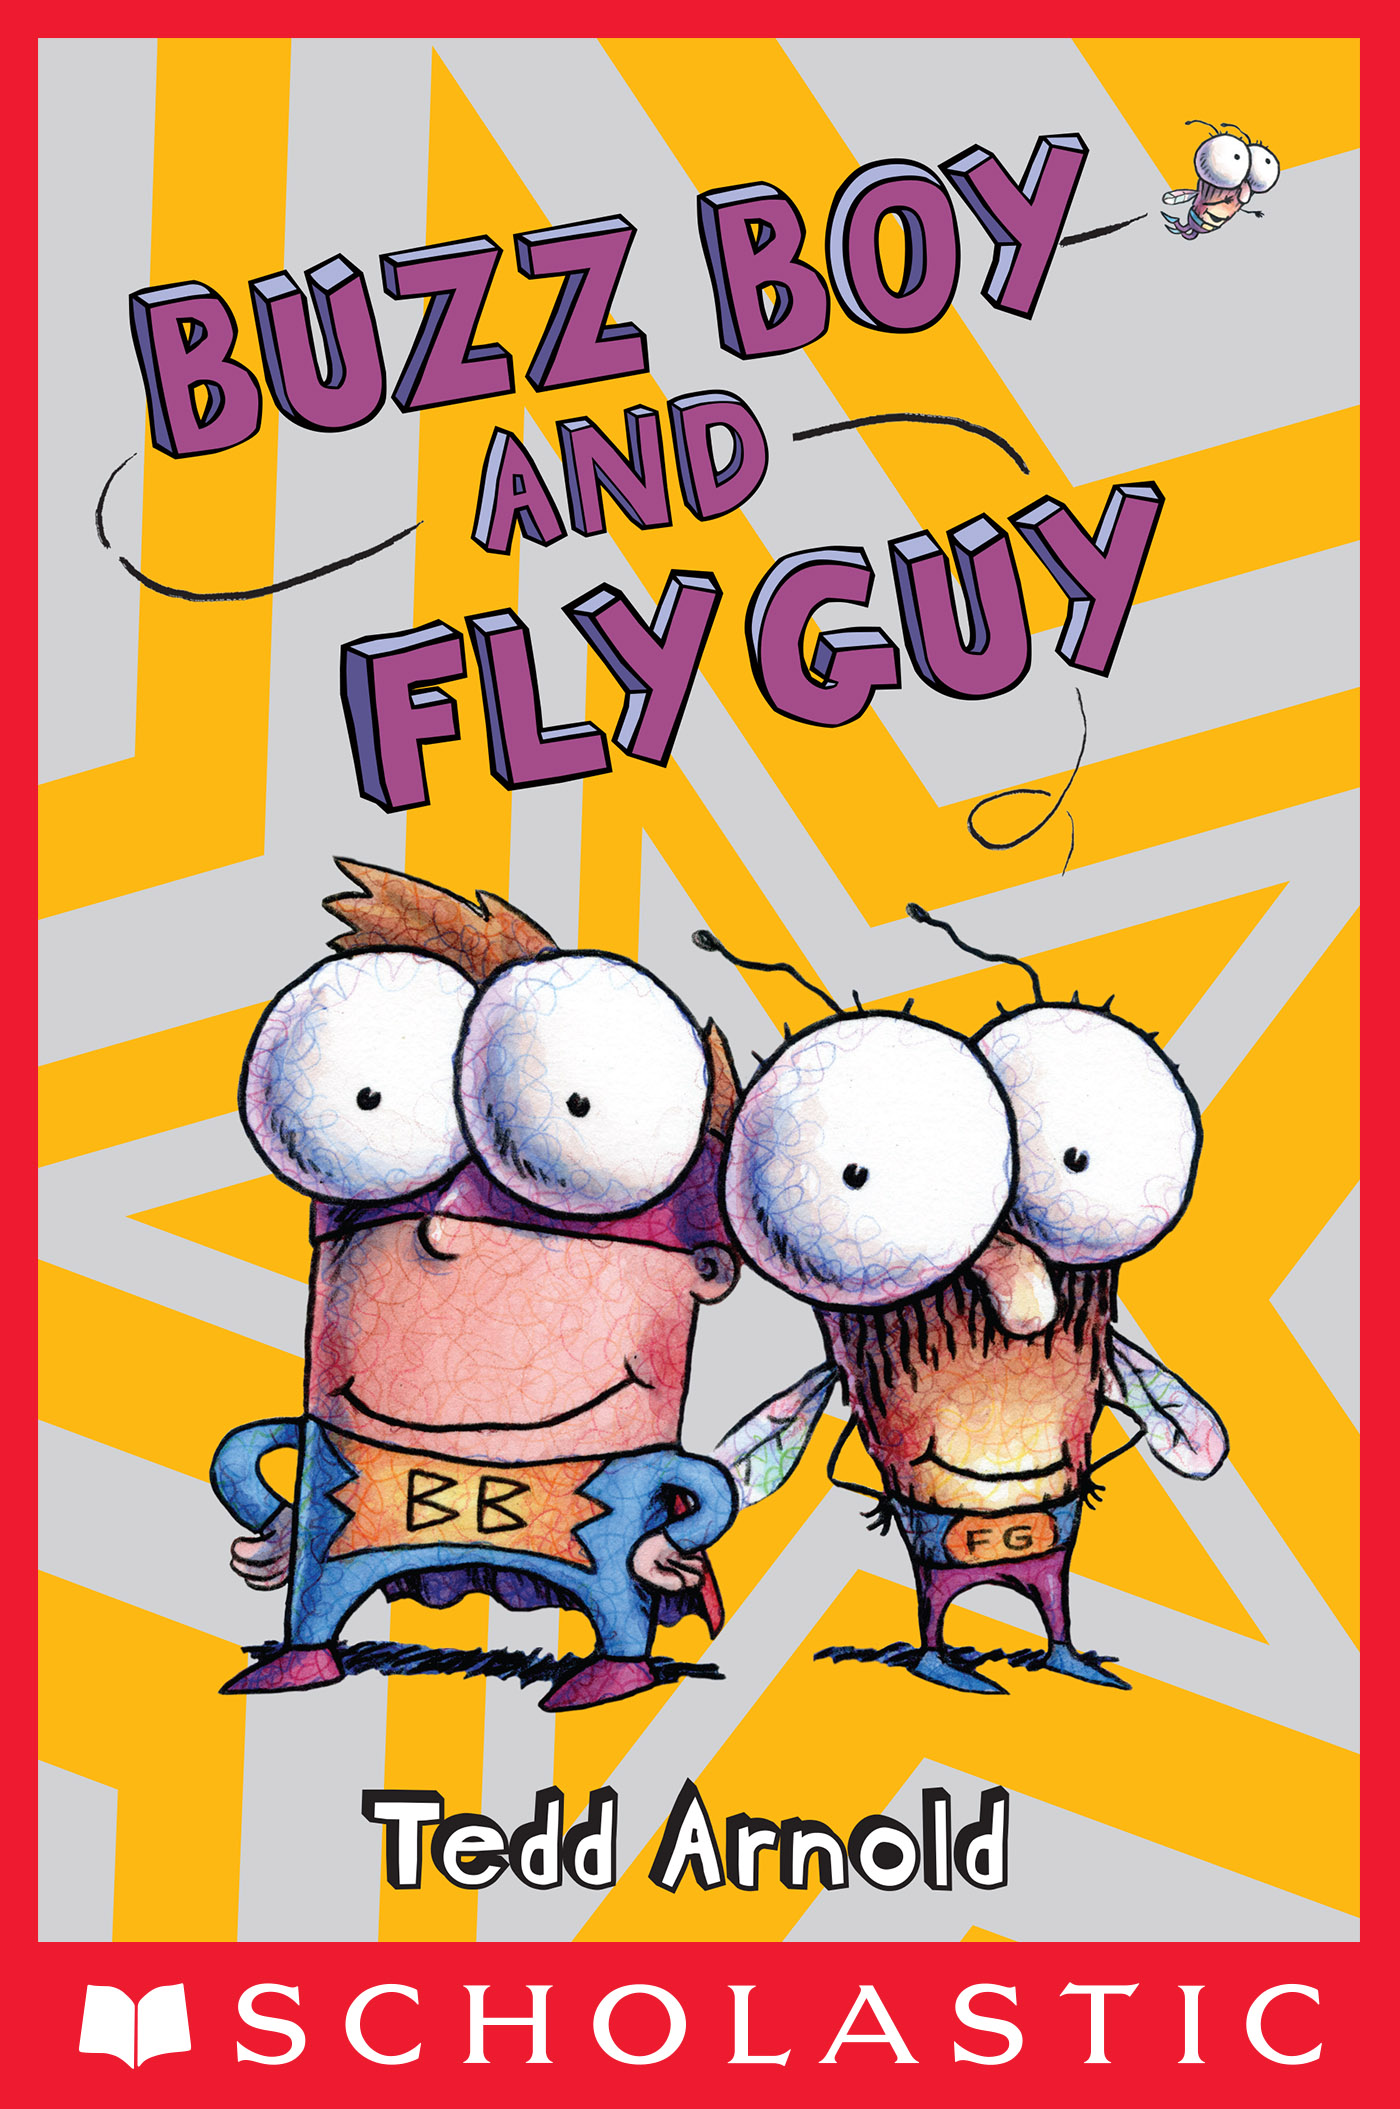 Buzz Boy and Fly Guy (Fly Guy #9) [electronic resource]